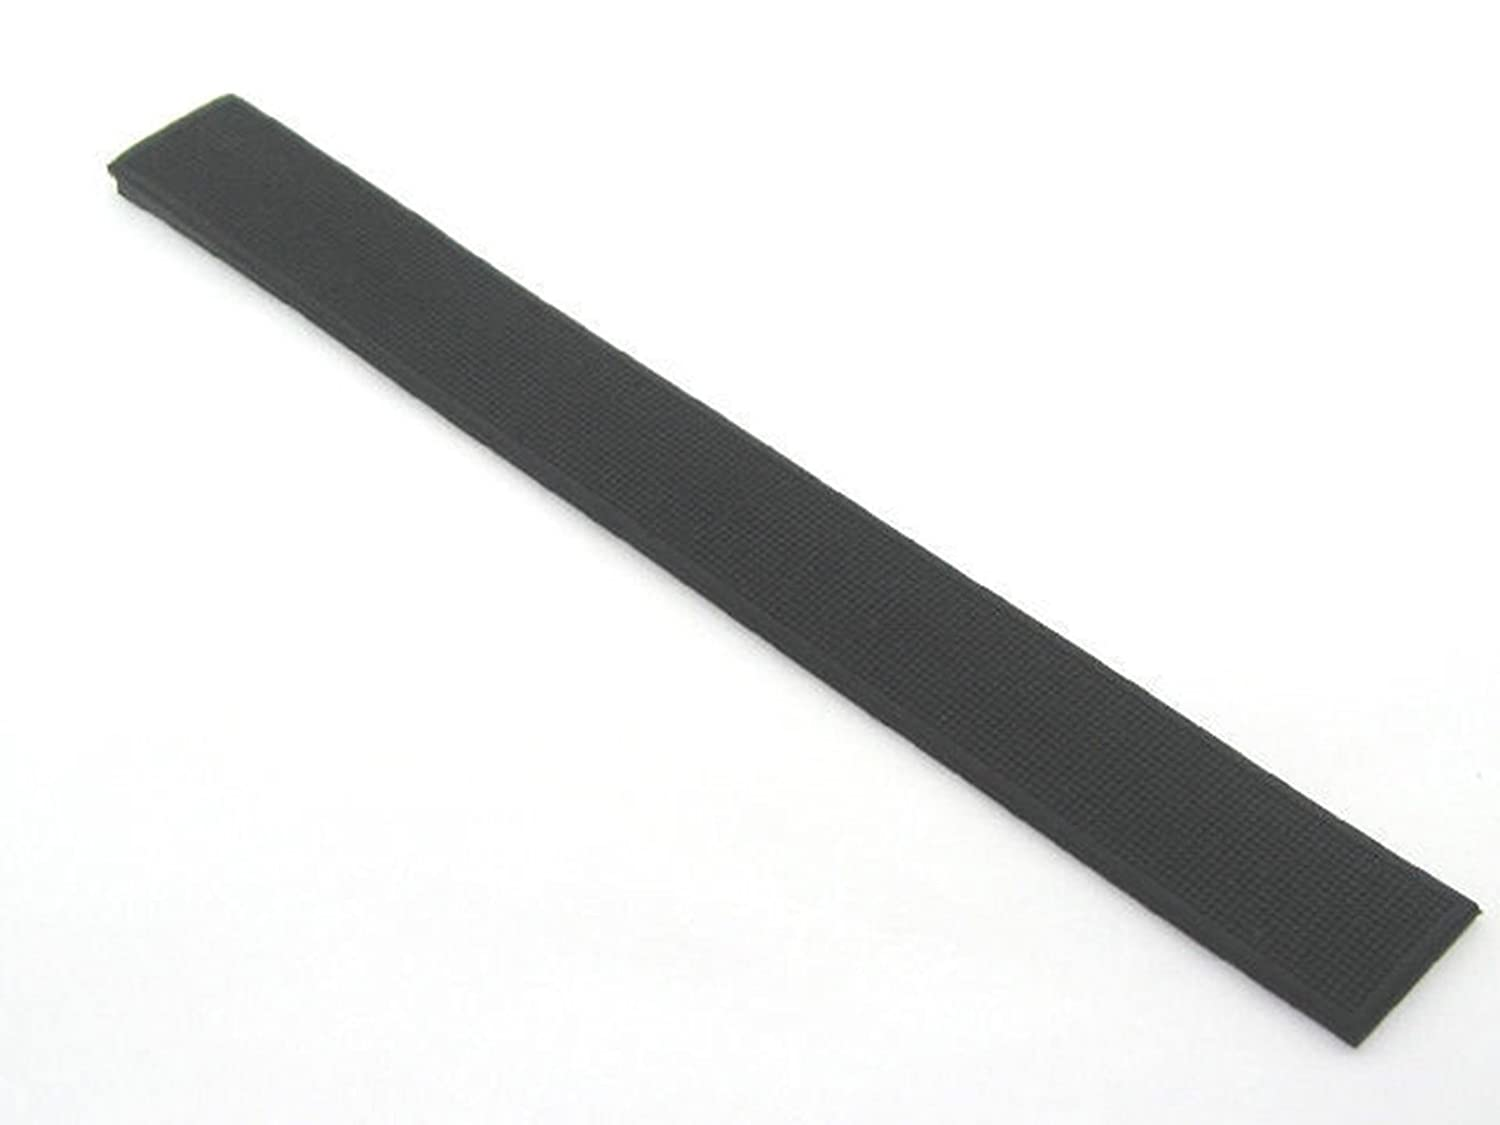 22 mm Rubber Band Watch Strap for TAG Heuer wae1111 – 0ゴルフブラック9 G  B07D6PD9DP